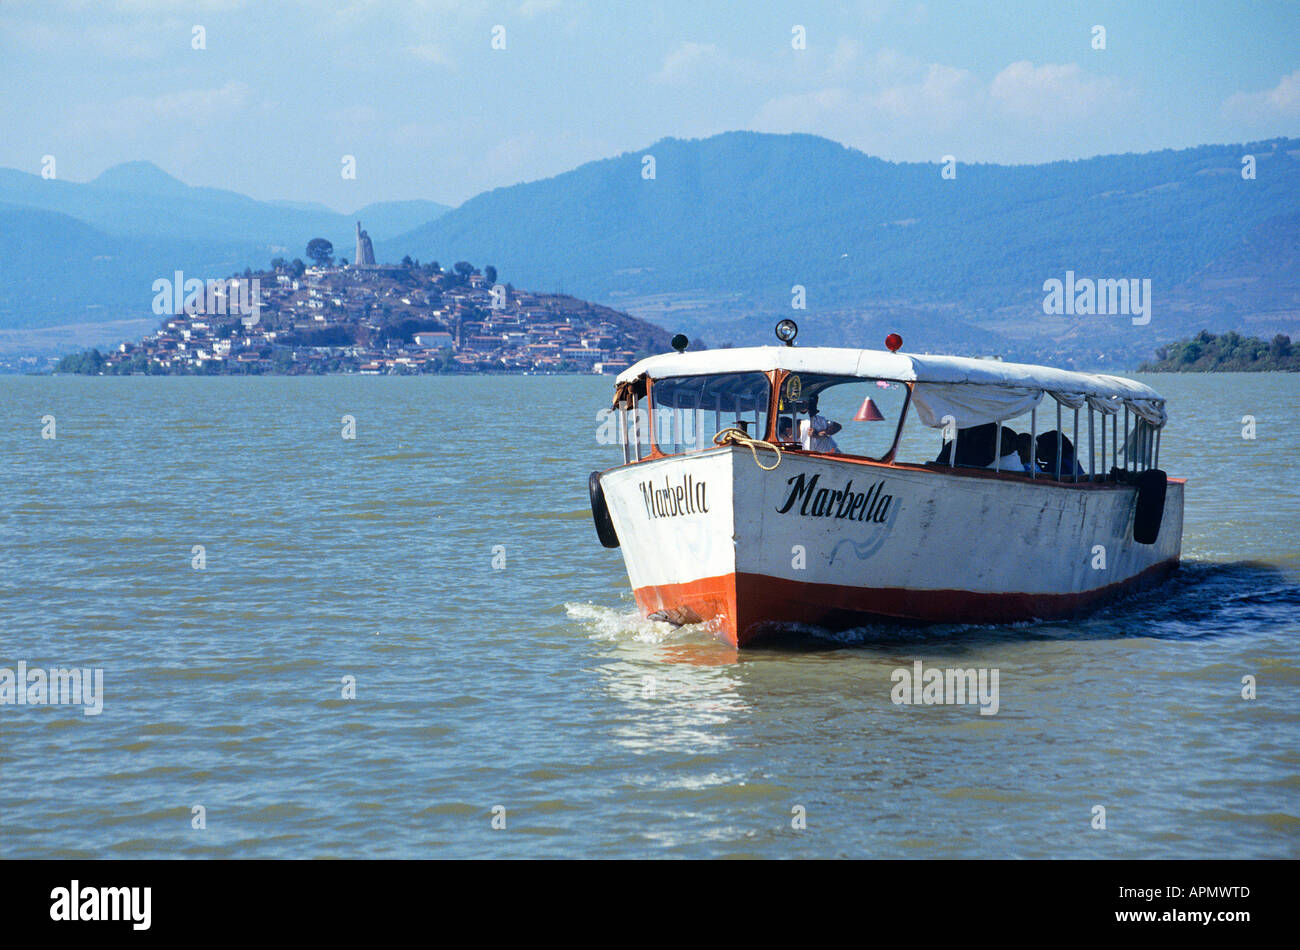 A ferry boat with its name inscribed across the bows leaves behind the Island of Janitzio and surrounding hills in the background as it plies its way through the waters of Lake Patzcuaro - Stock Image